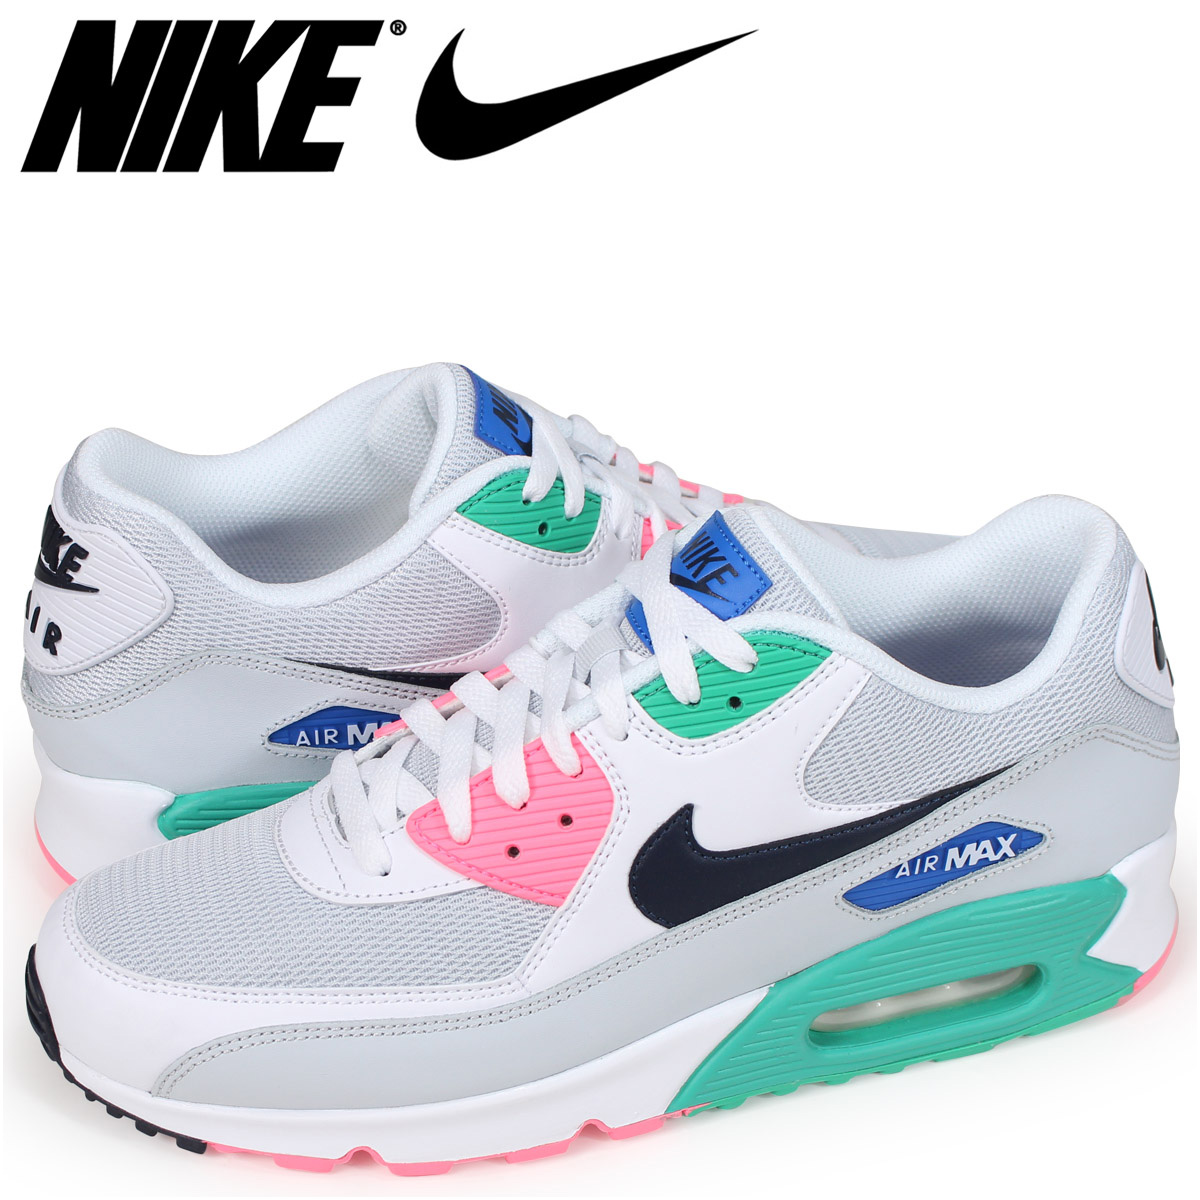 finest selection 218dd f15bd Nike NIKE Air Max 90 essential sneakers men AIR MAX 90 ESSENTIAL AJ1285-100  white